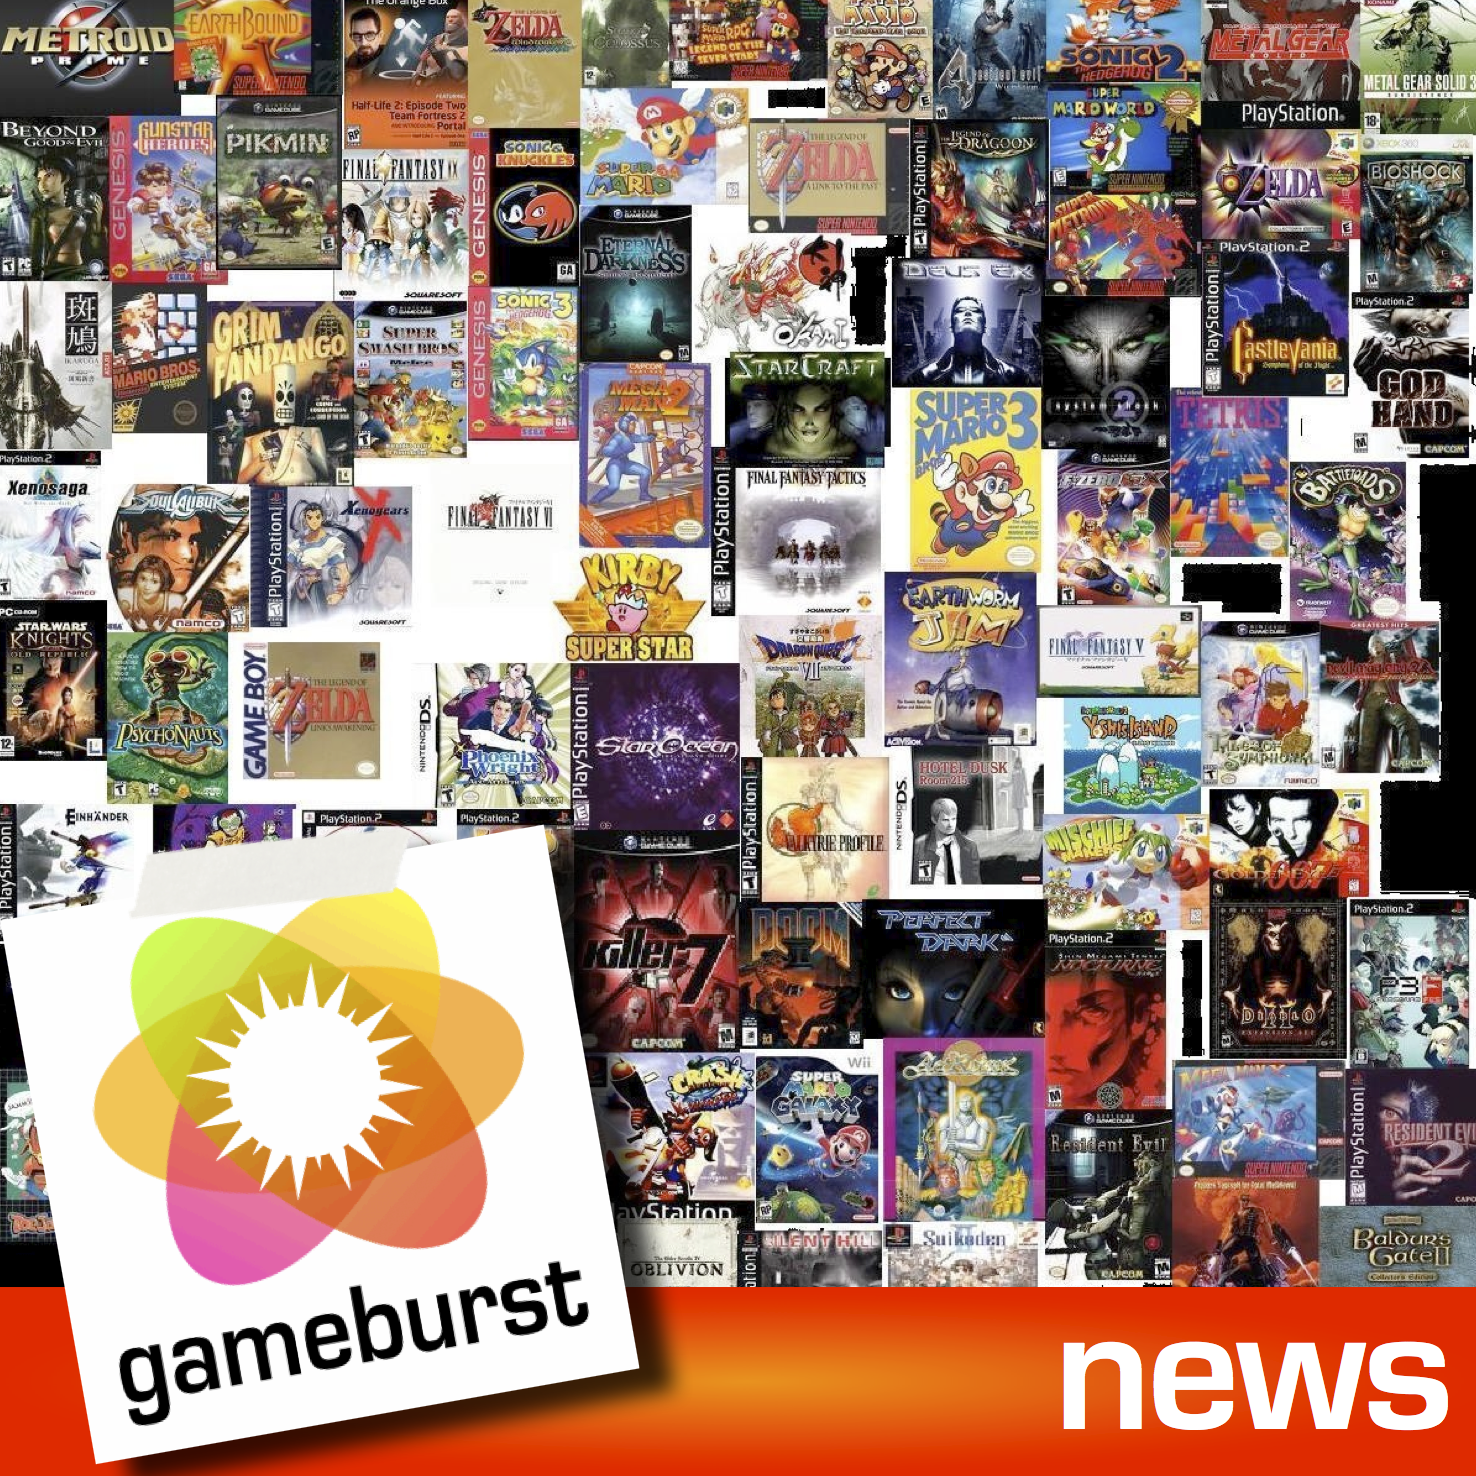 GameBurst News - October 28th 2012